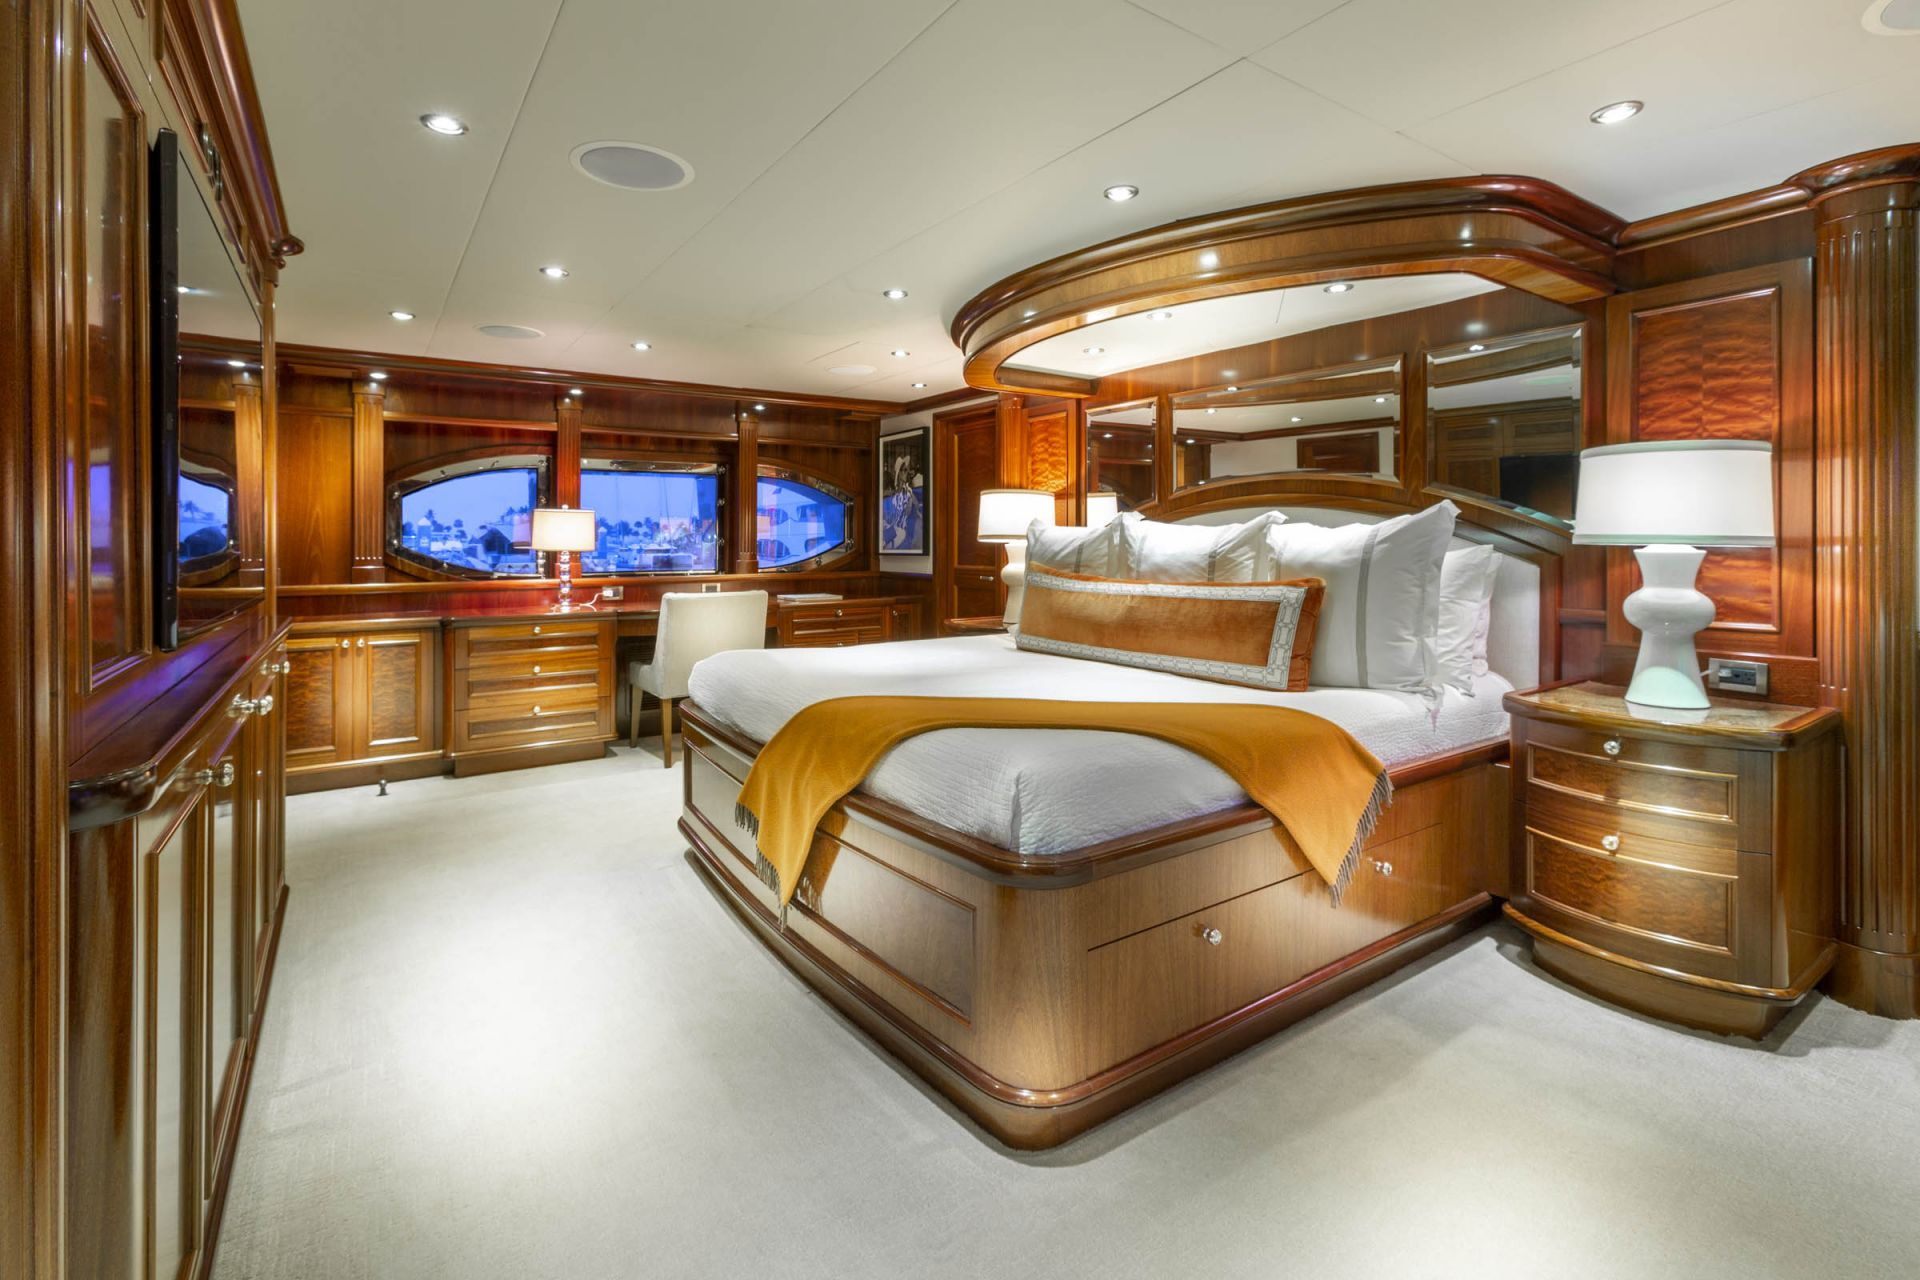 M/Y FAR FROM IT Yacht Master Cabin